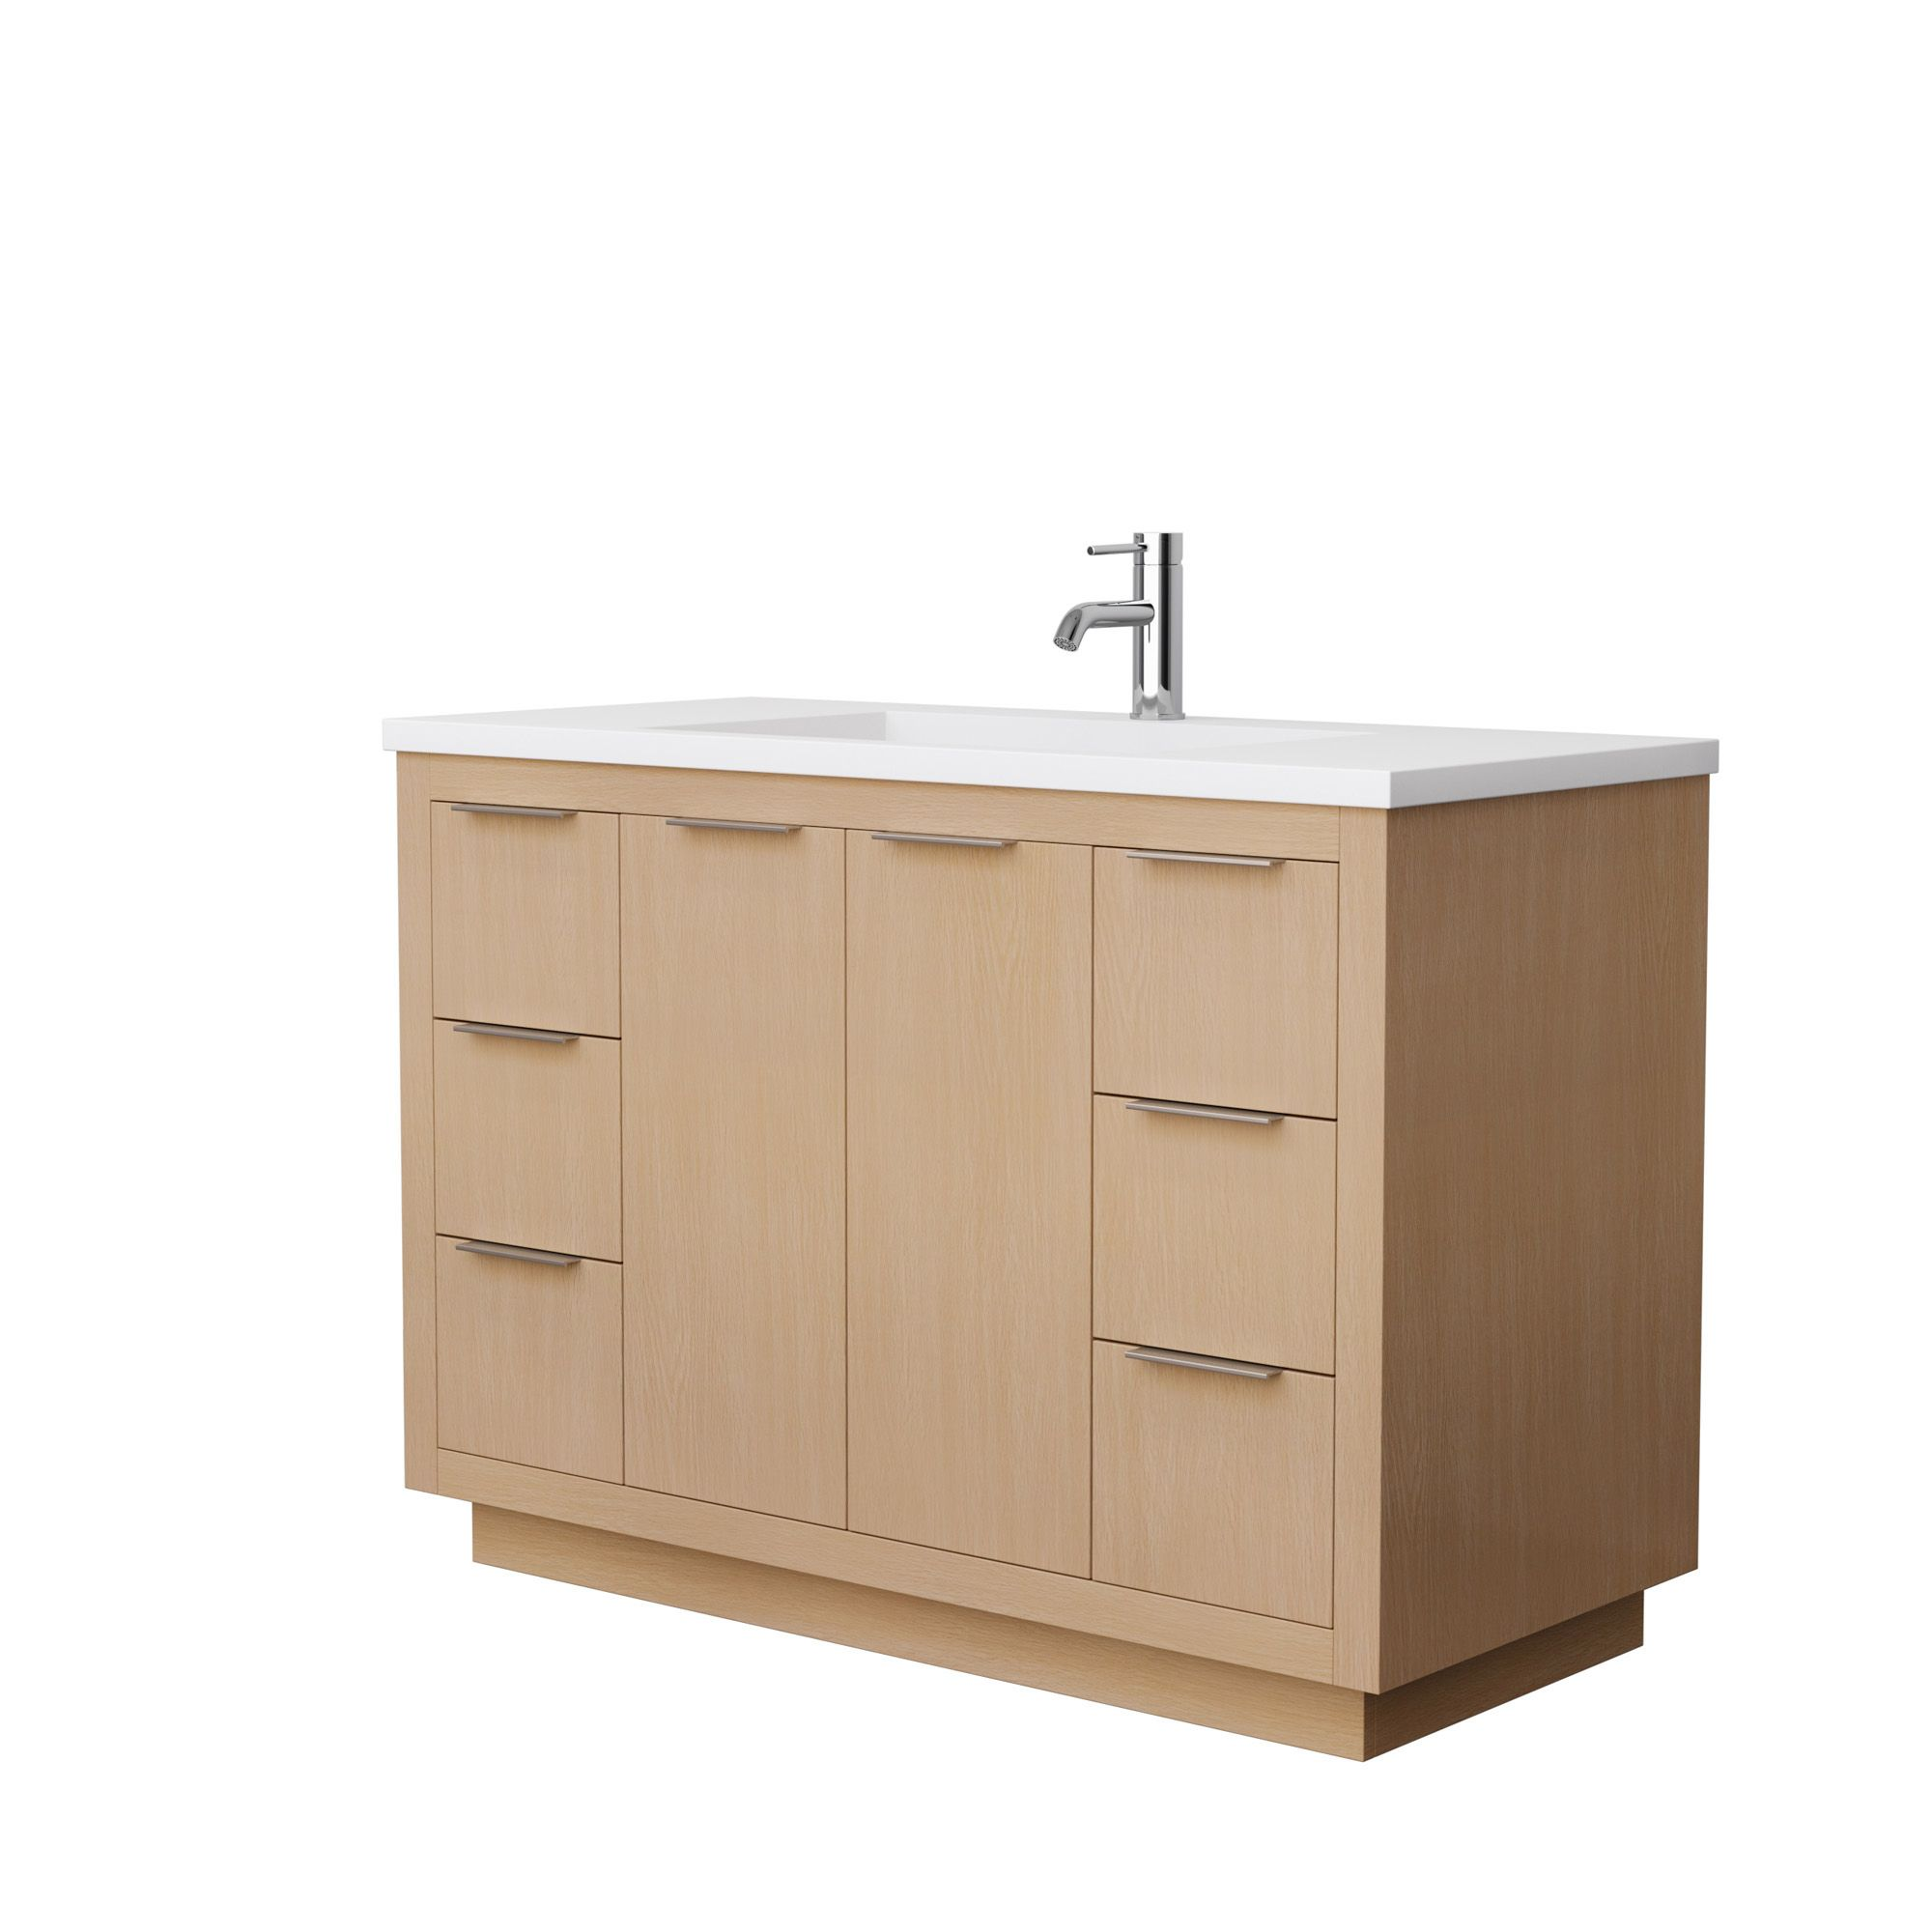 "48"" Single Bathroom Vanity in Light Straw with Countertop and Hardware Options"